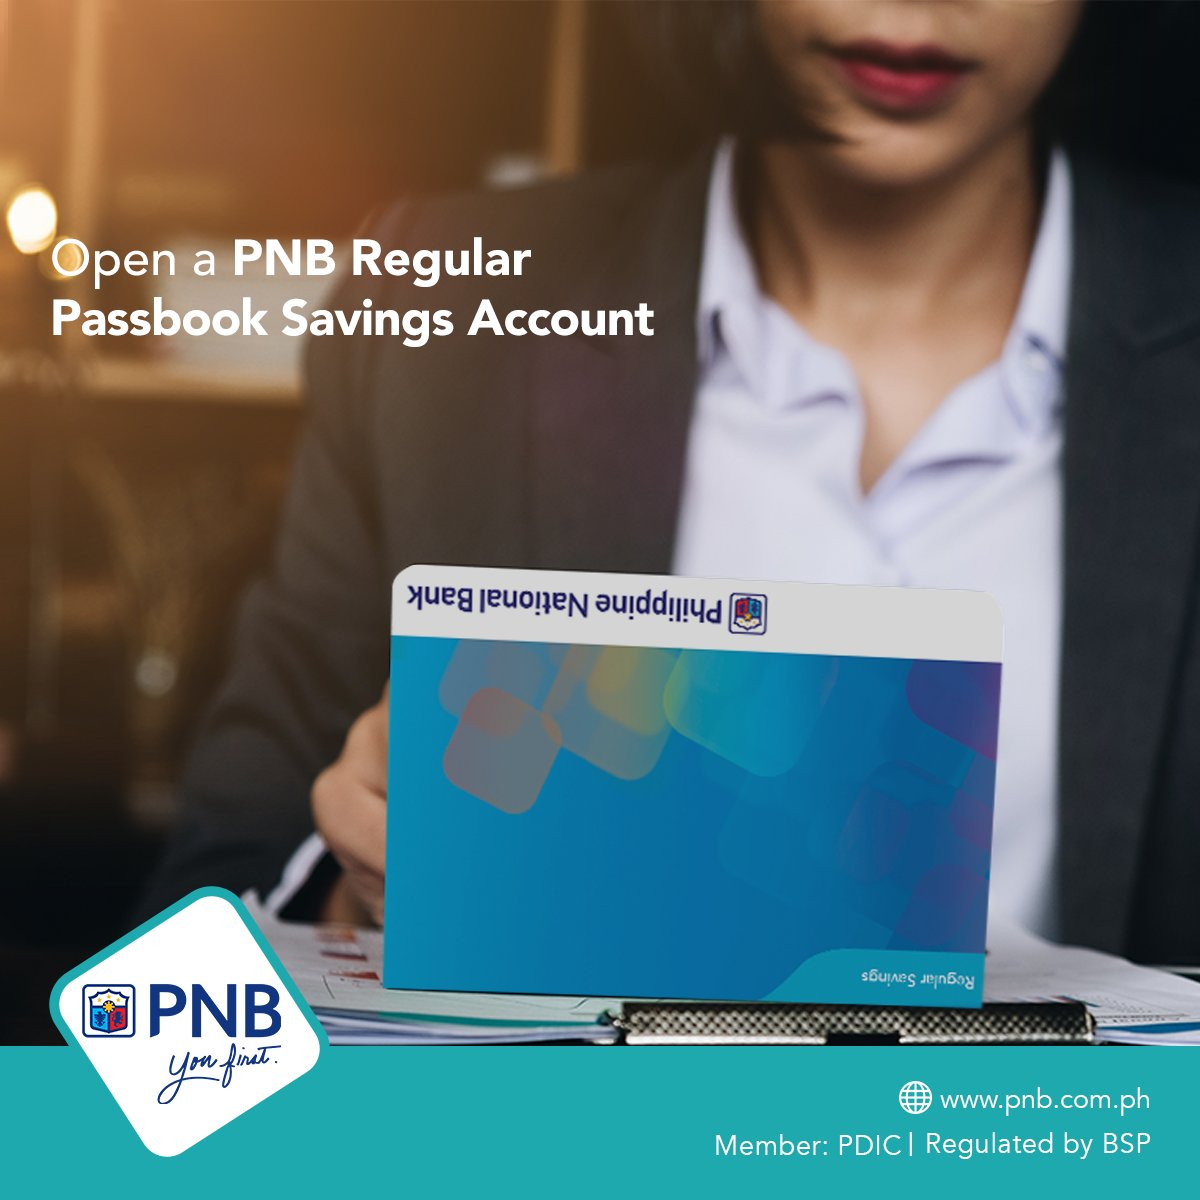 Philippine National Bank on Twitter: